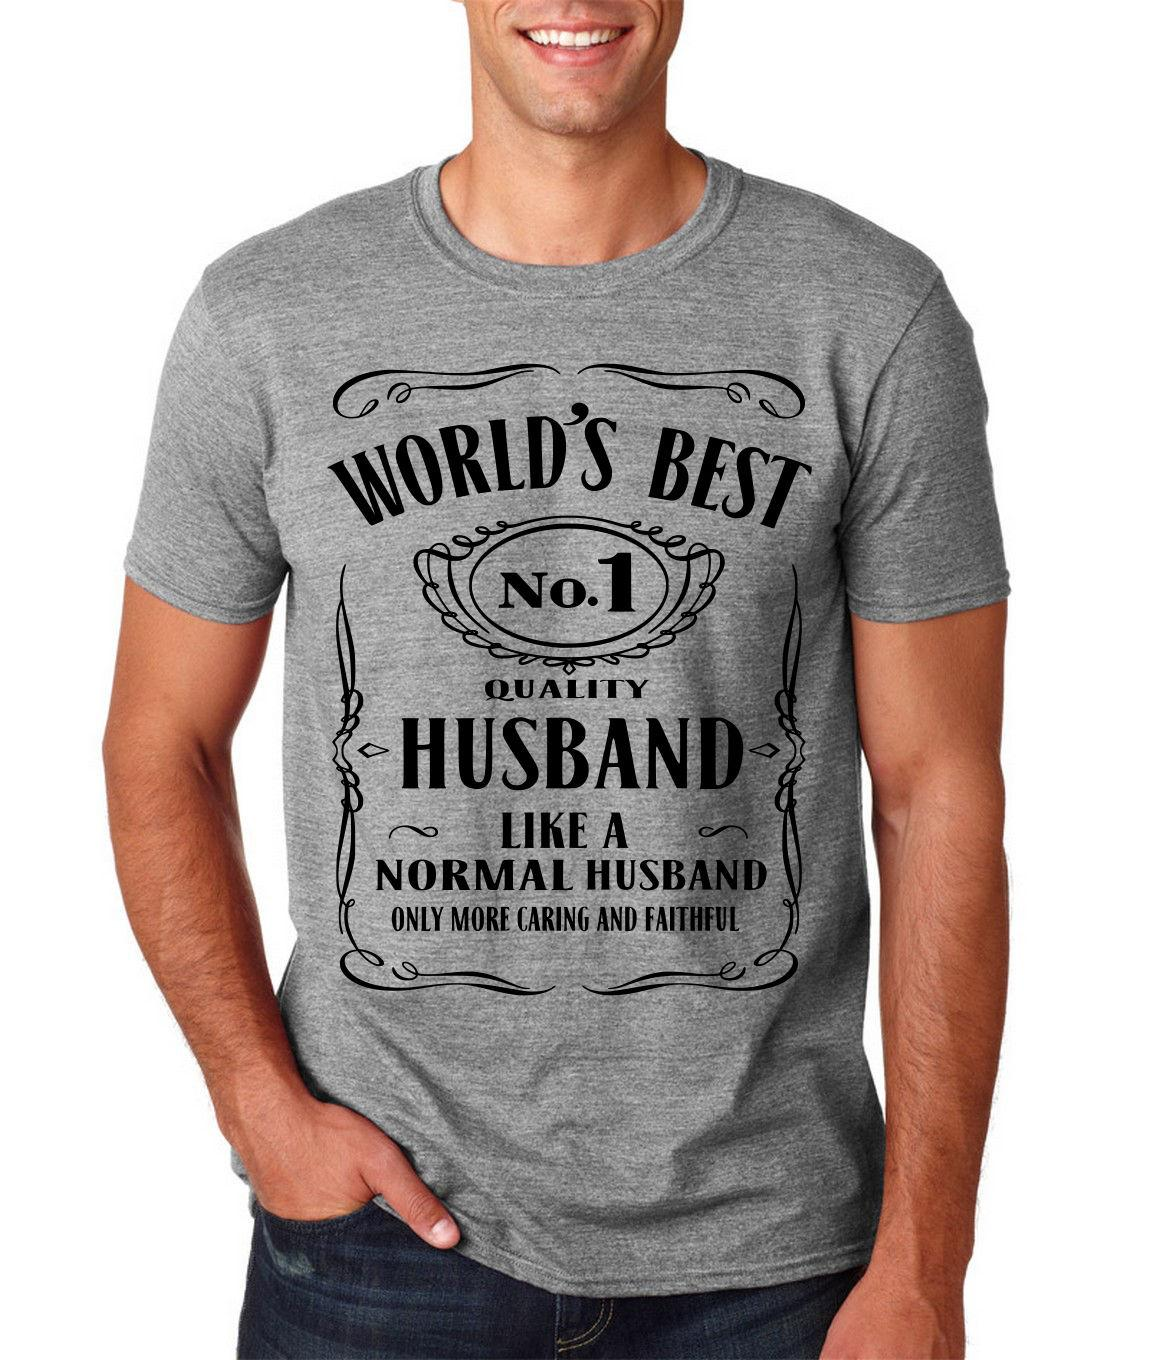 World Best Husband No 1 Mens T Shirt Birthday Gift Valentine Funny